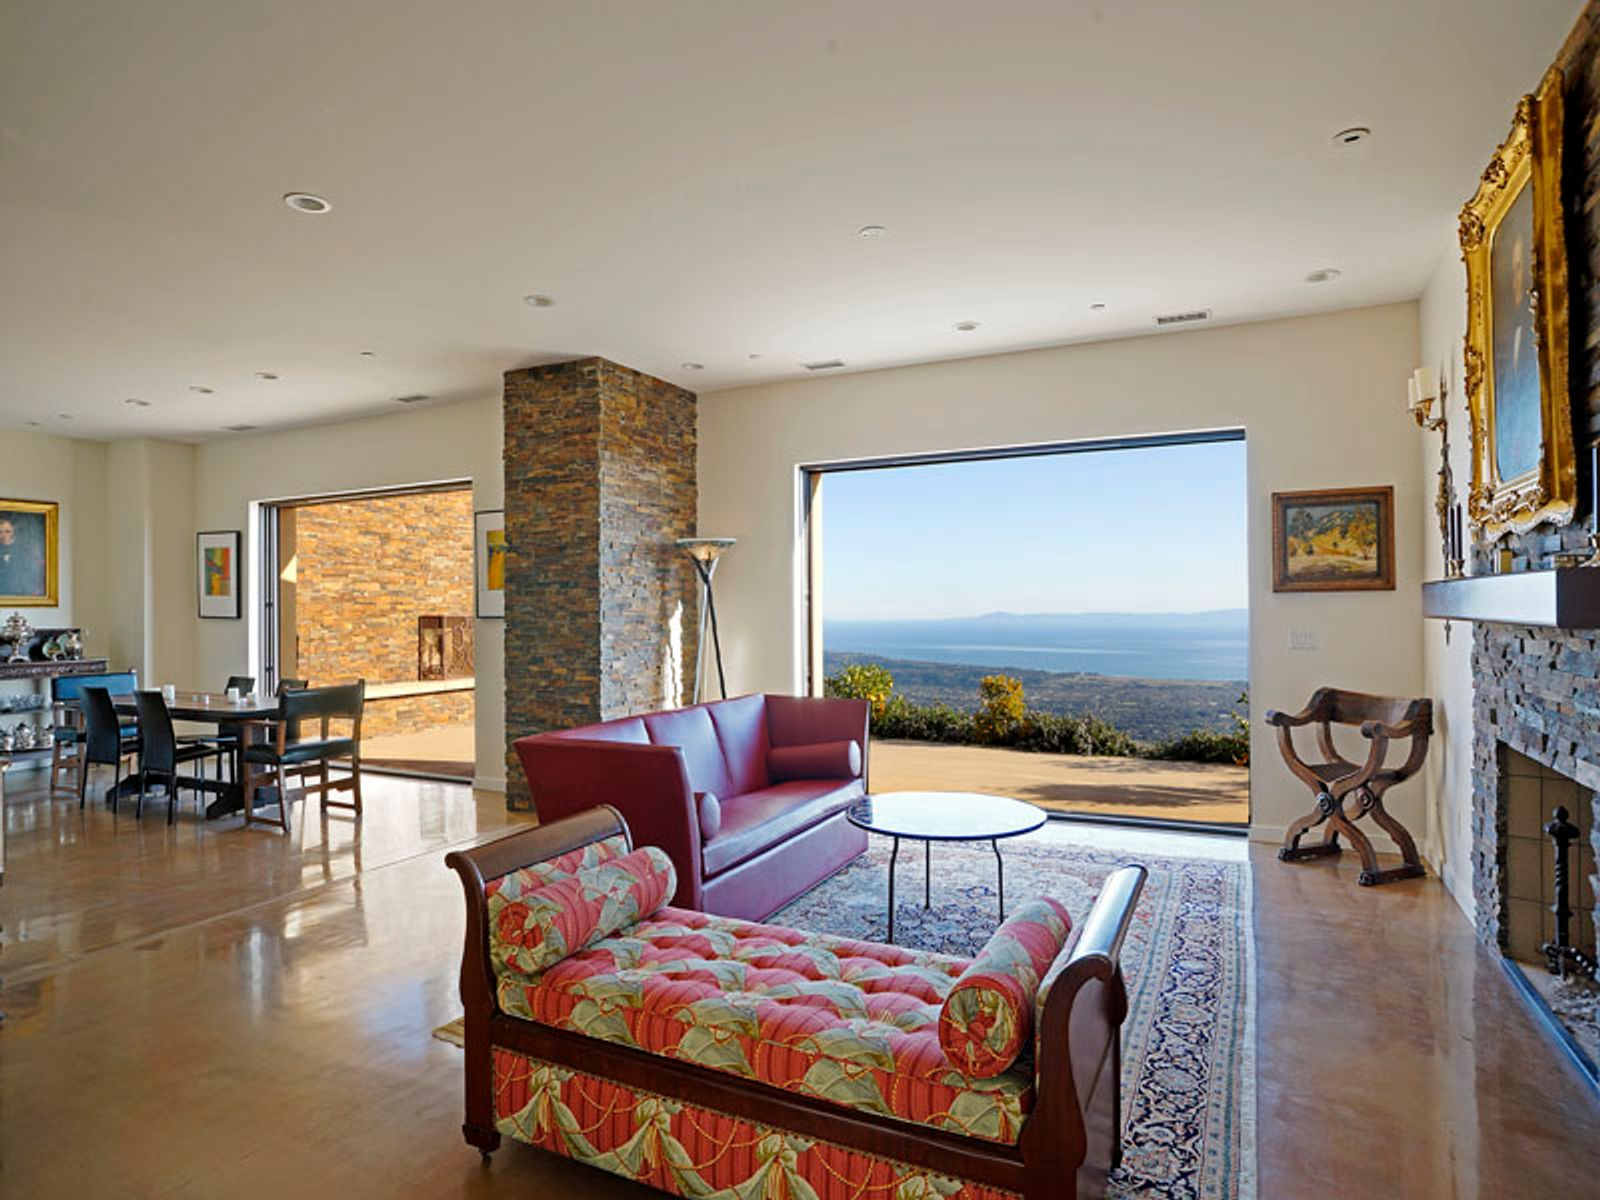 Magnificent Mountaintop Retreat , Santa Barbara CA Single Family Home - Santa Barbara Real Estate